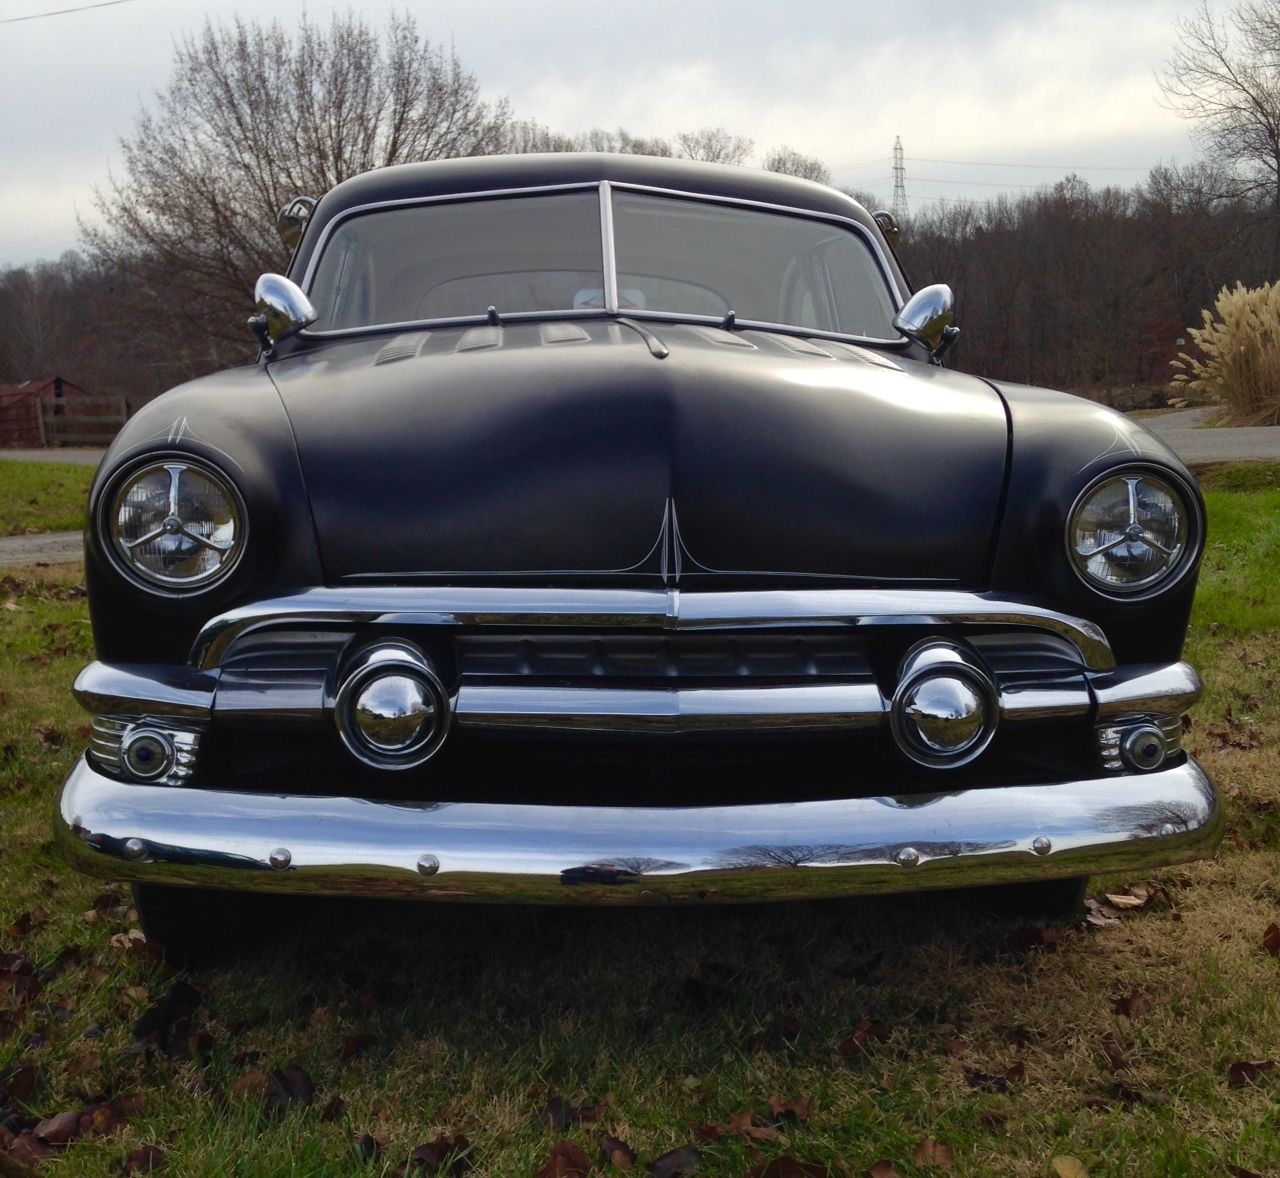 1951 Ford Buisness Coupe Club Coupe Hot Rod Street Rod